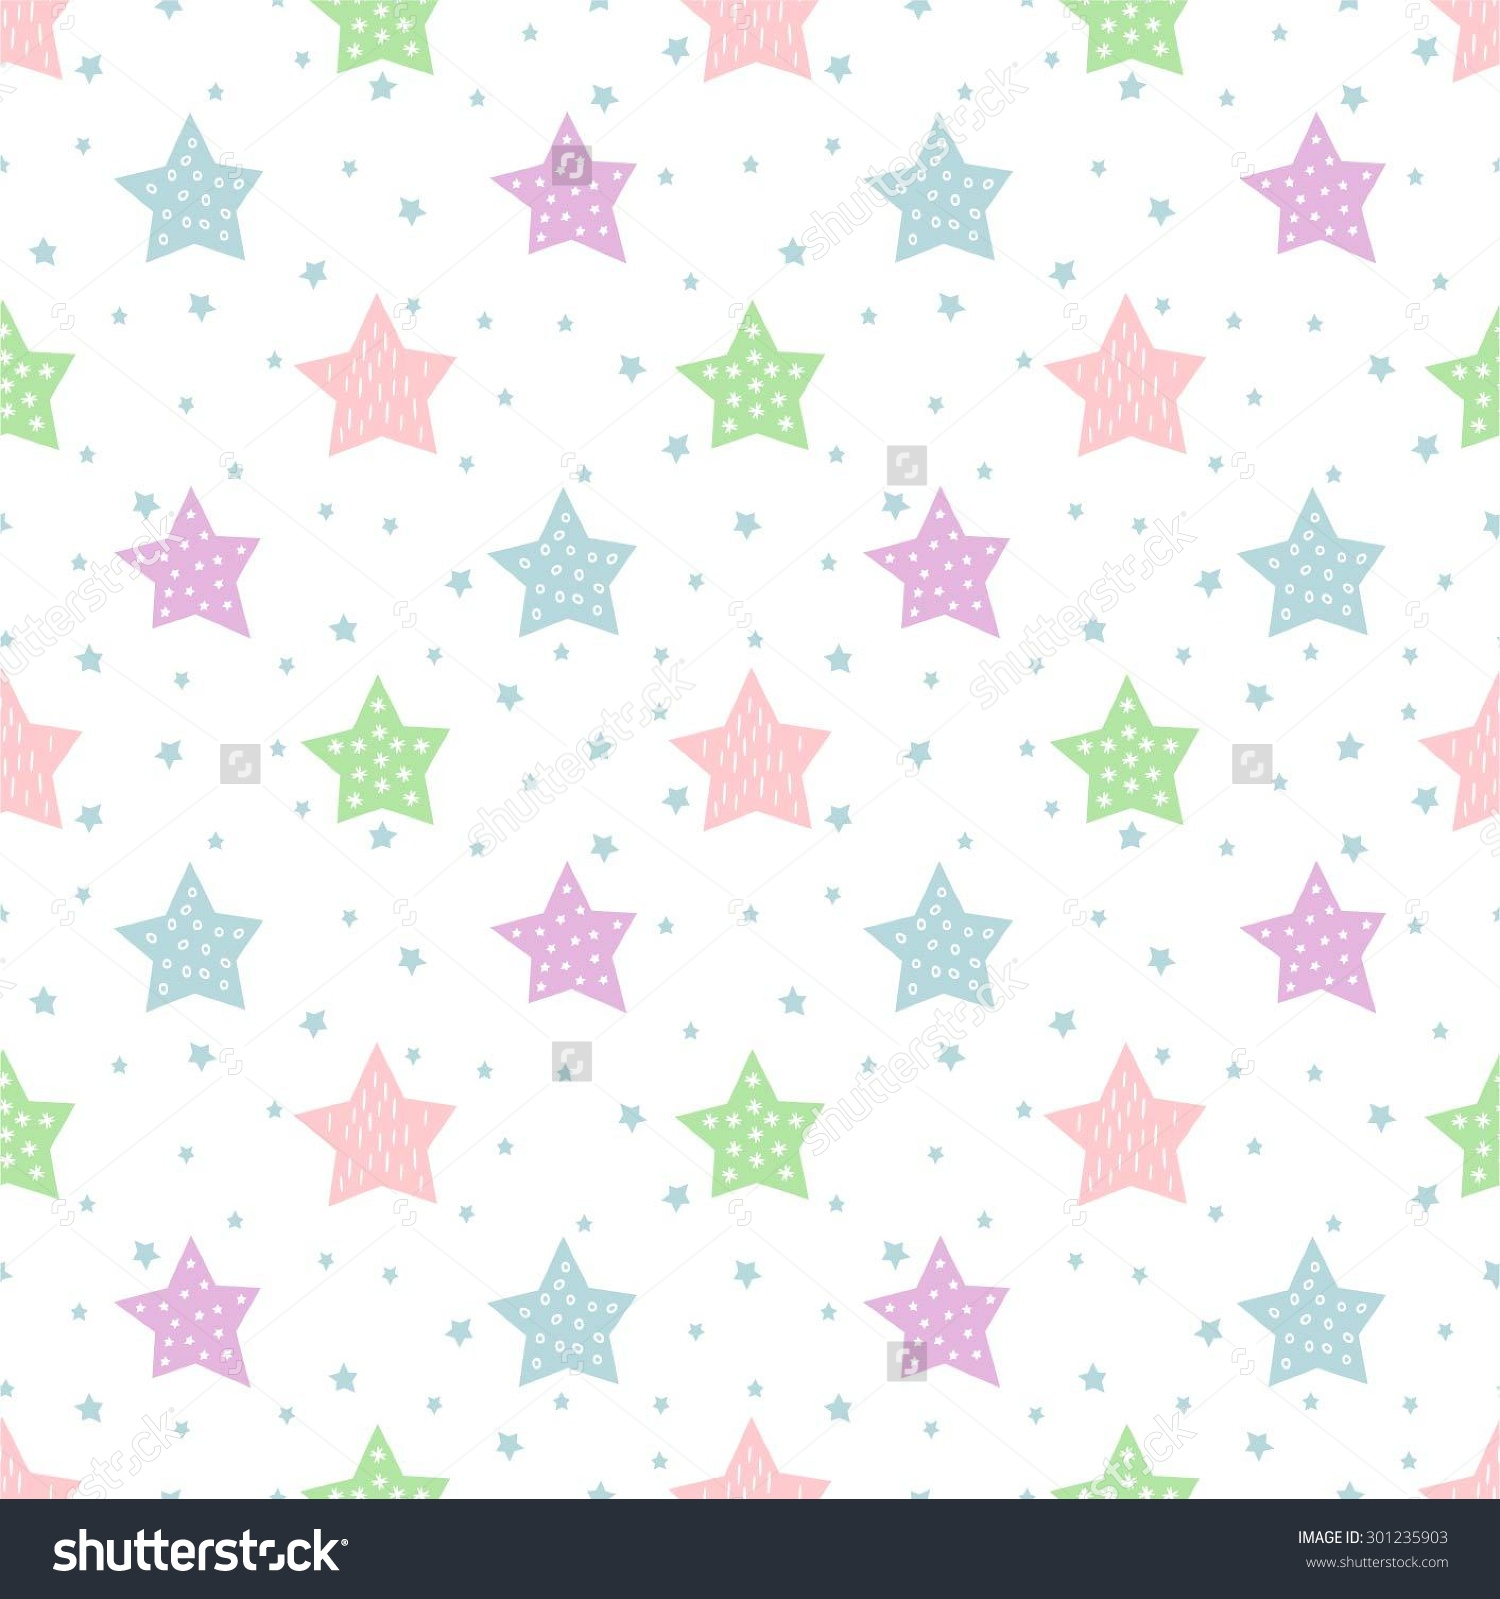 1500x1599 Cute Backgrounds For Kids Collection